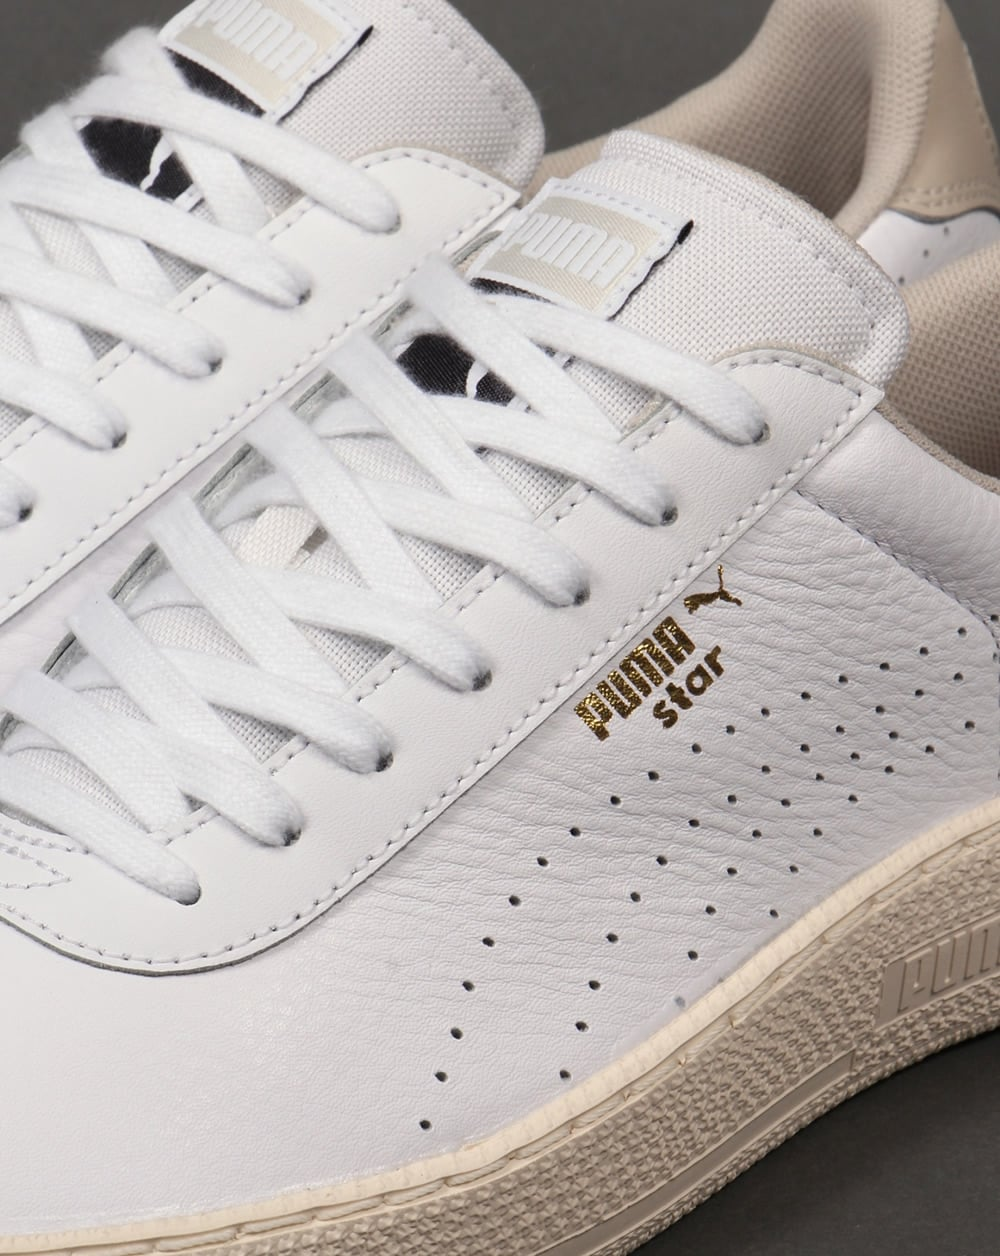 e5fe6e07d66 Puma Star Crafted Leather Trainers White - Trainers from 80s Casual ...